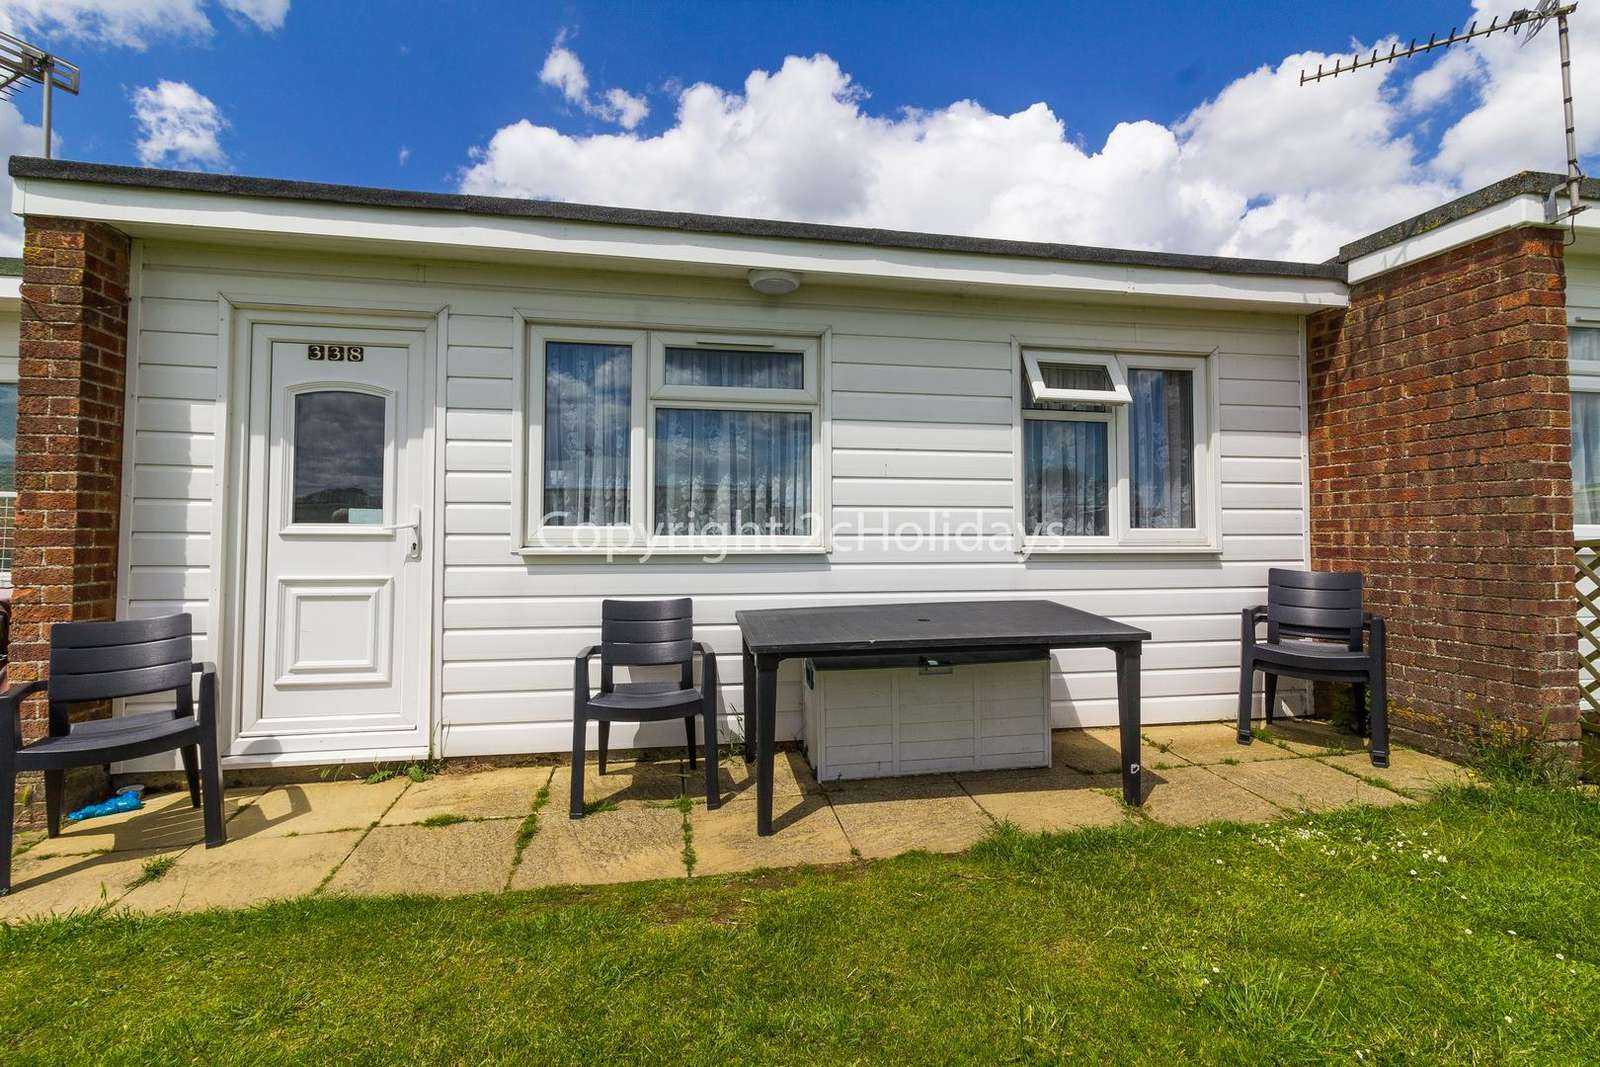 Homely chalet just minutes away from the gorgeous beach of Scratby!